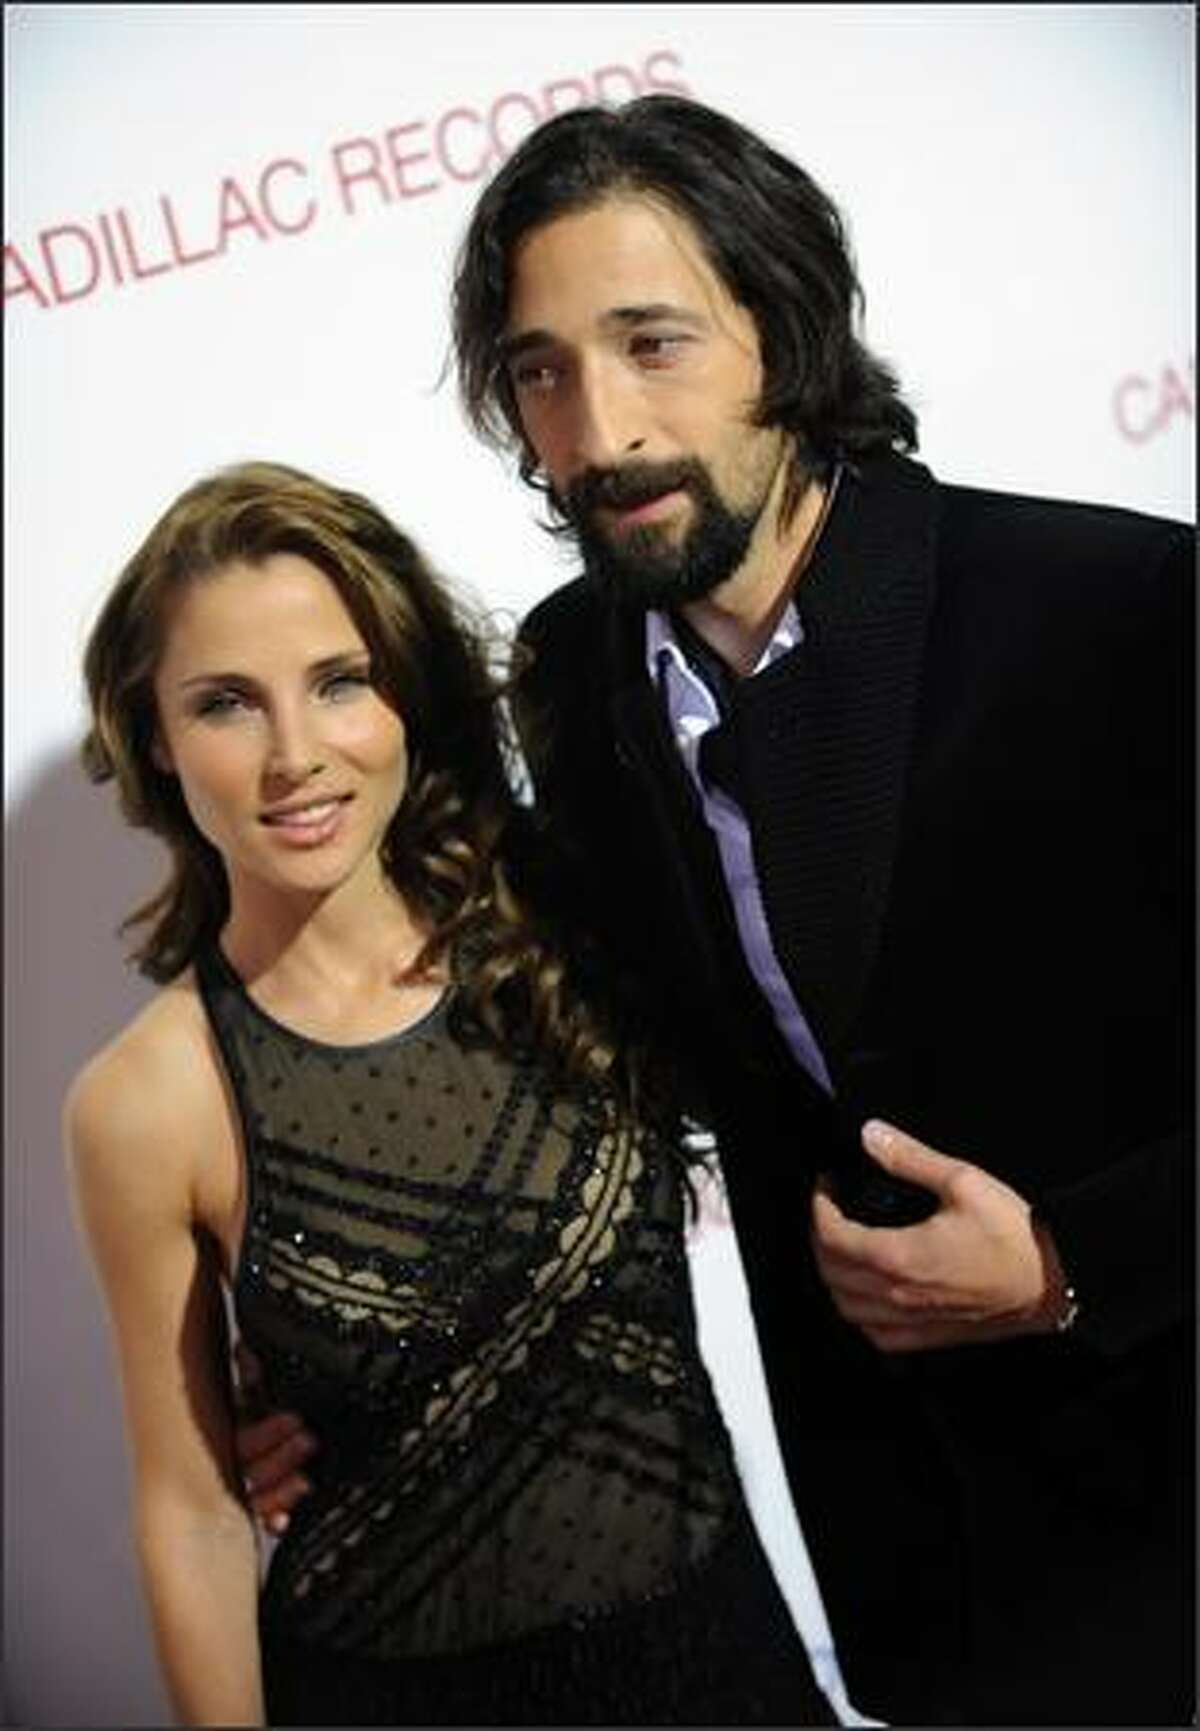 Actor Adrien Brody arrives with his girlfriend, Spanish actress Elsa Pataky, for the Los Angeles premiere of